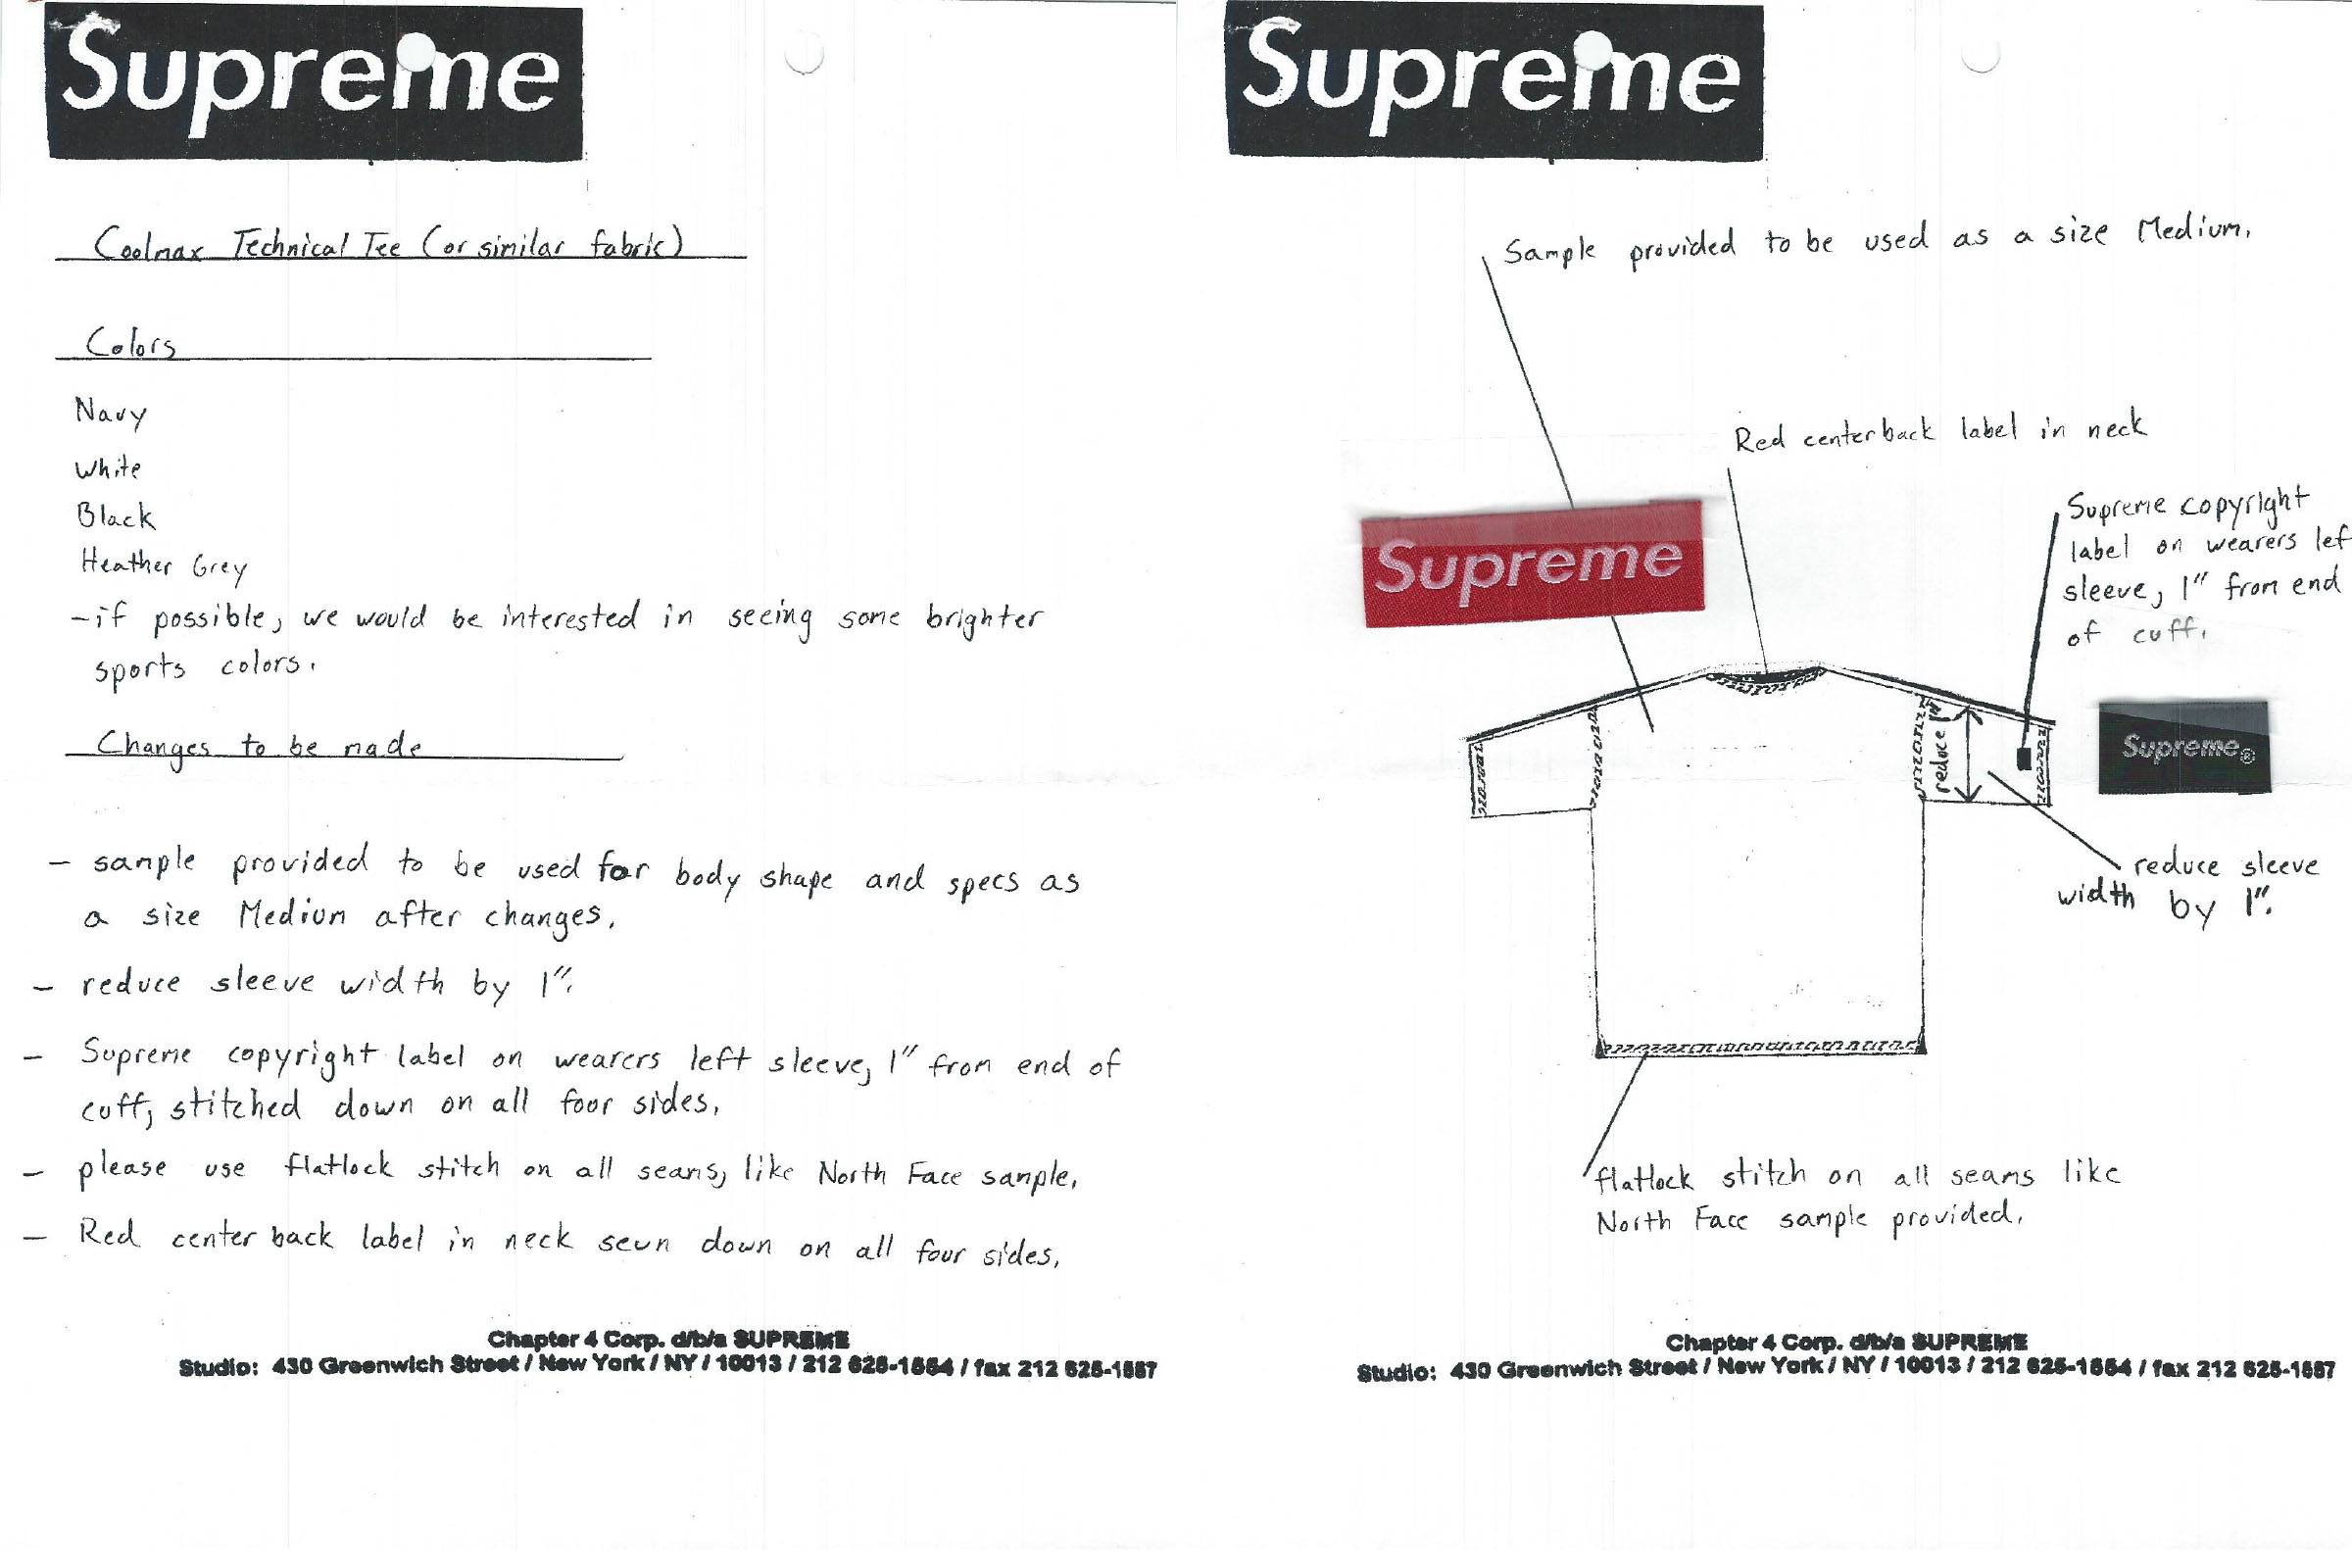 Production and sample notes for a Coolmax Technical T-Shirt